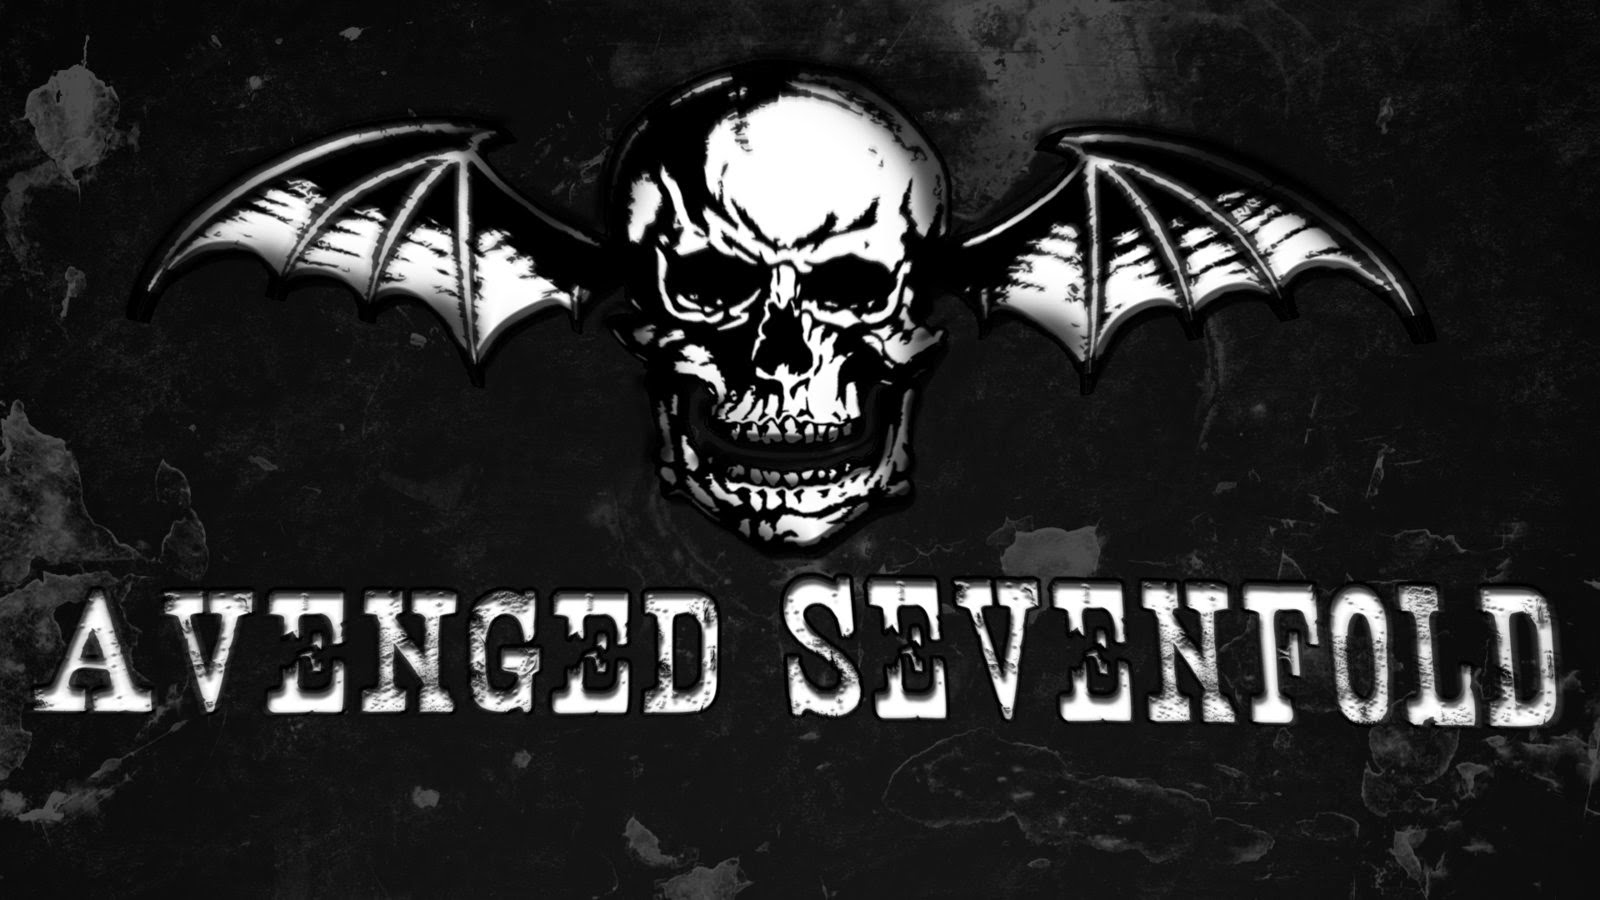 CD NIGHTMARE SEVENFOLD BAIXAR AVENGED COMPLETO